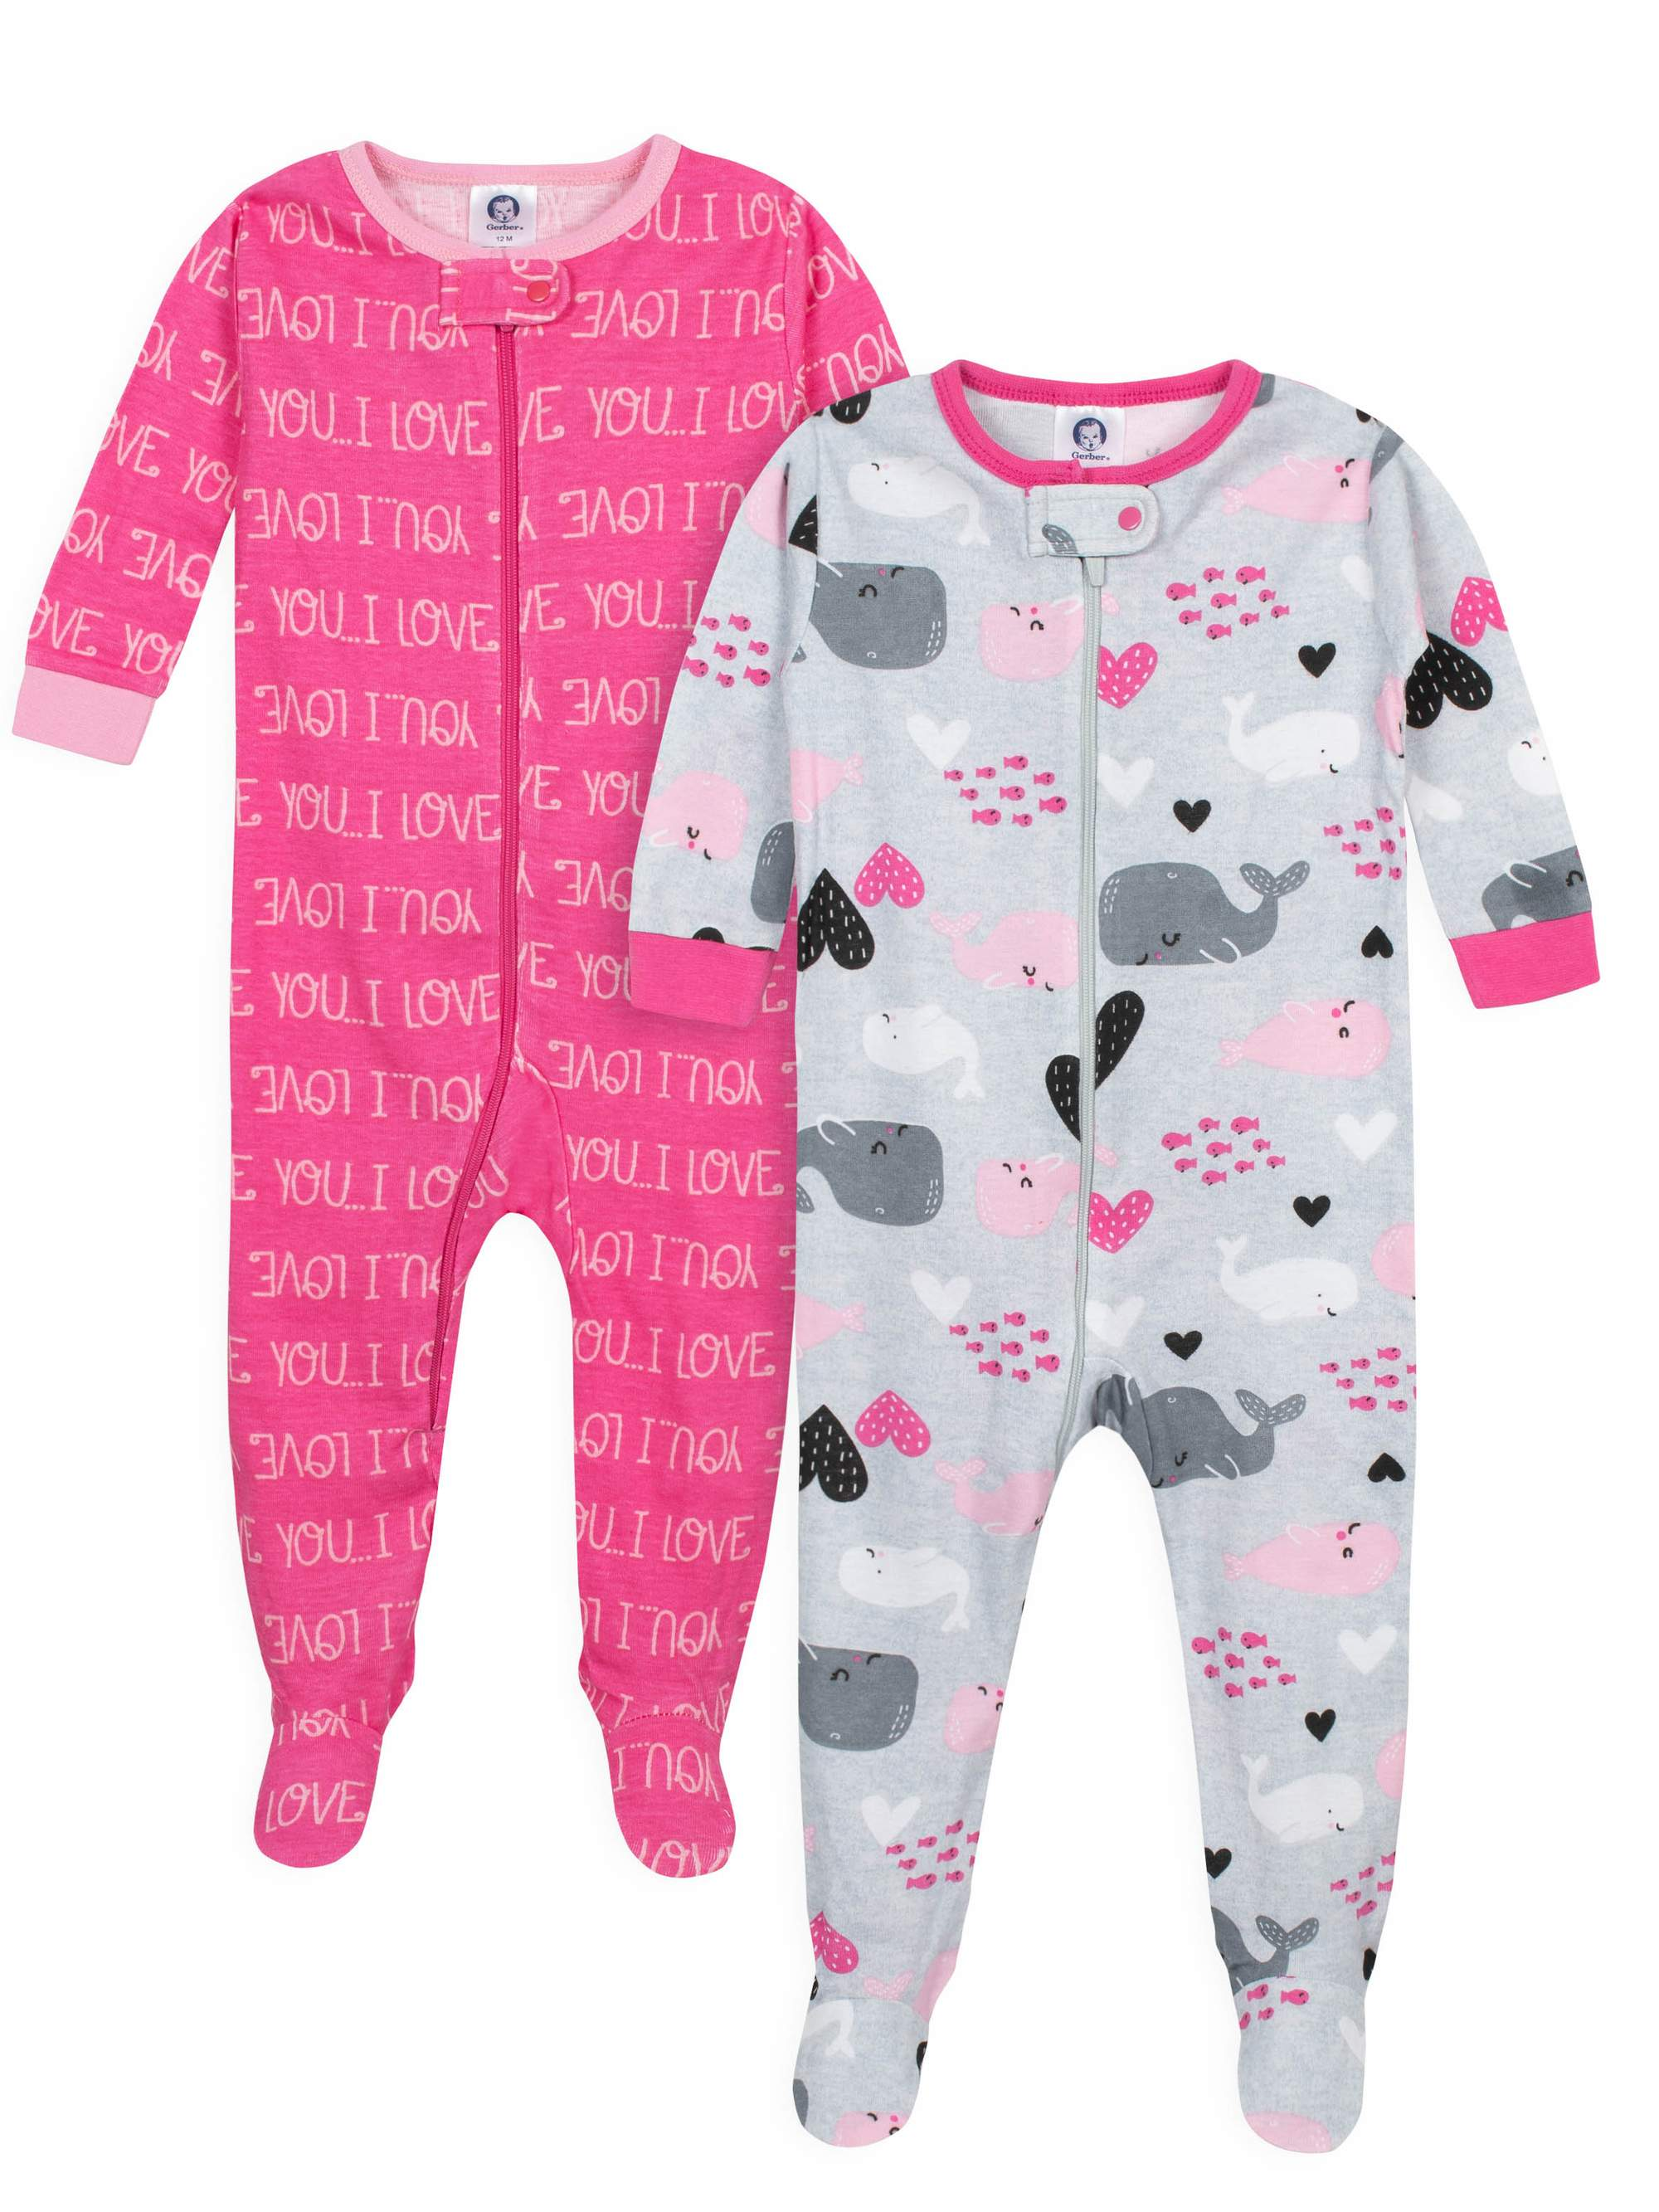 bed323bcf4913 Gerber - Gerber Footed tight-fit unionsuit pajamas, 2pk (baby girls) -  Walmart.com